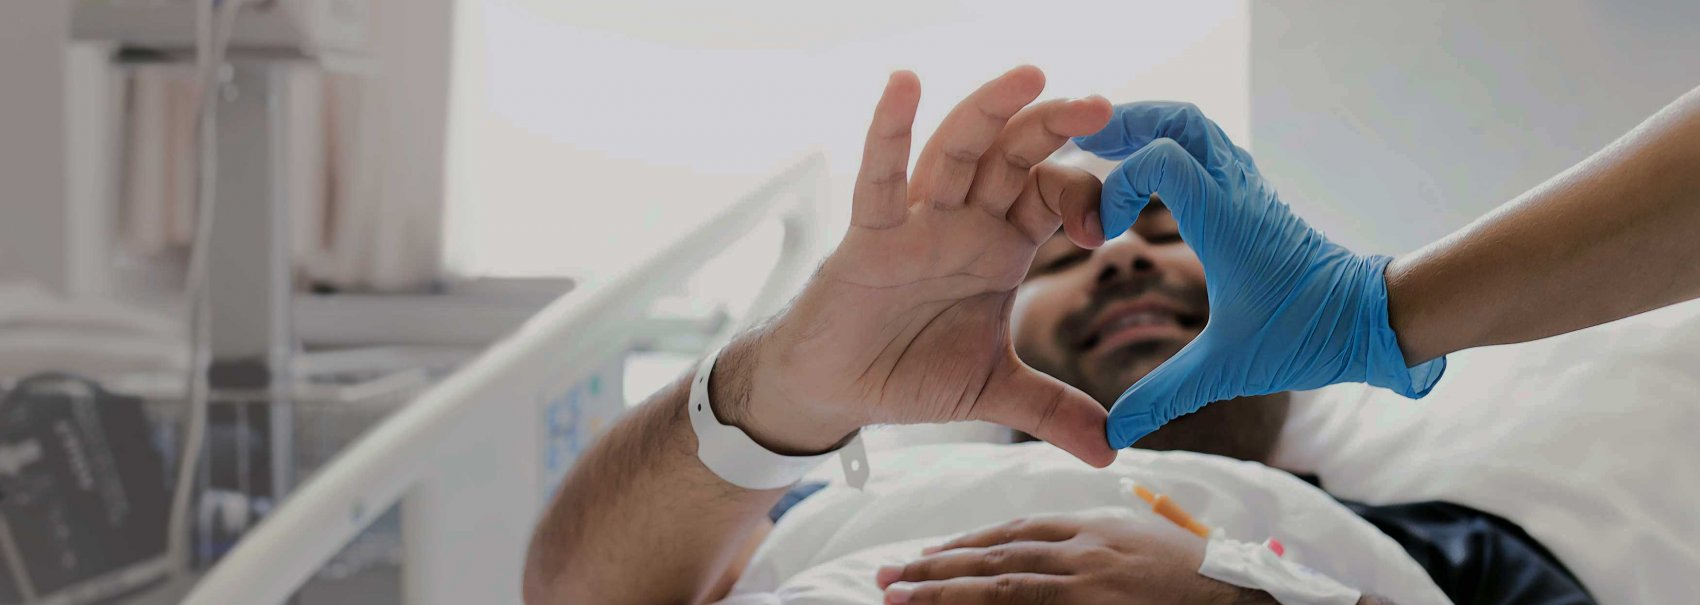 Healthcare worker and patient making a heart shape with hands